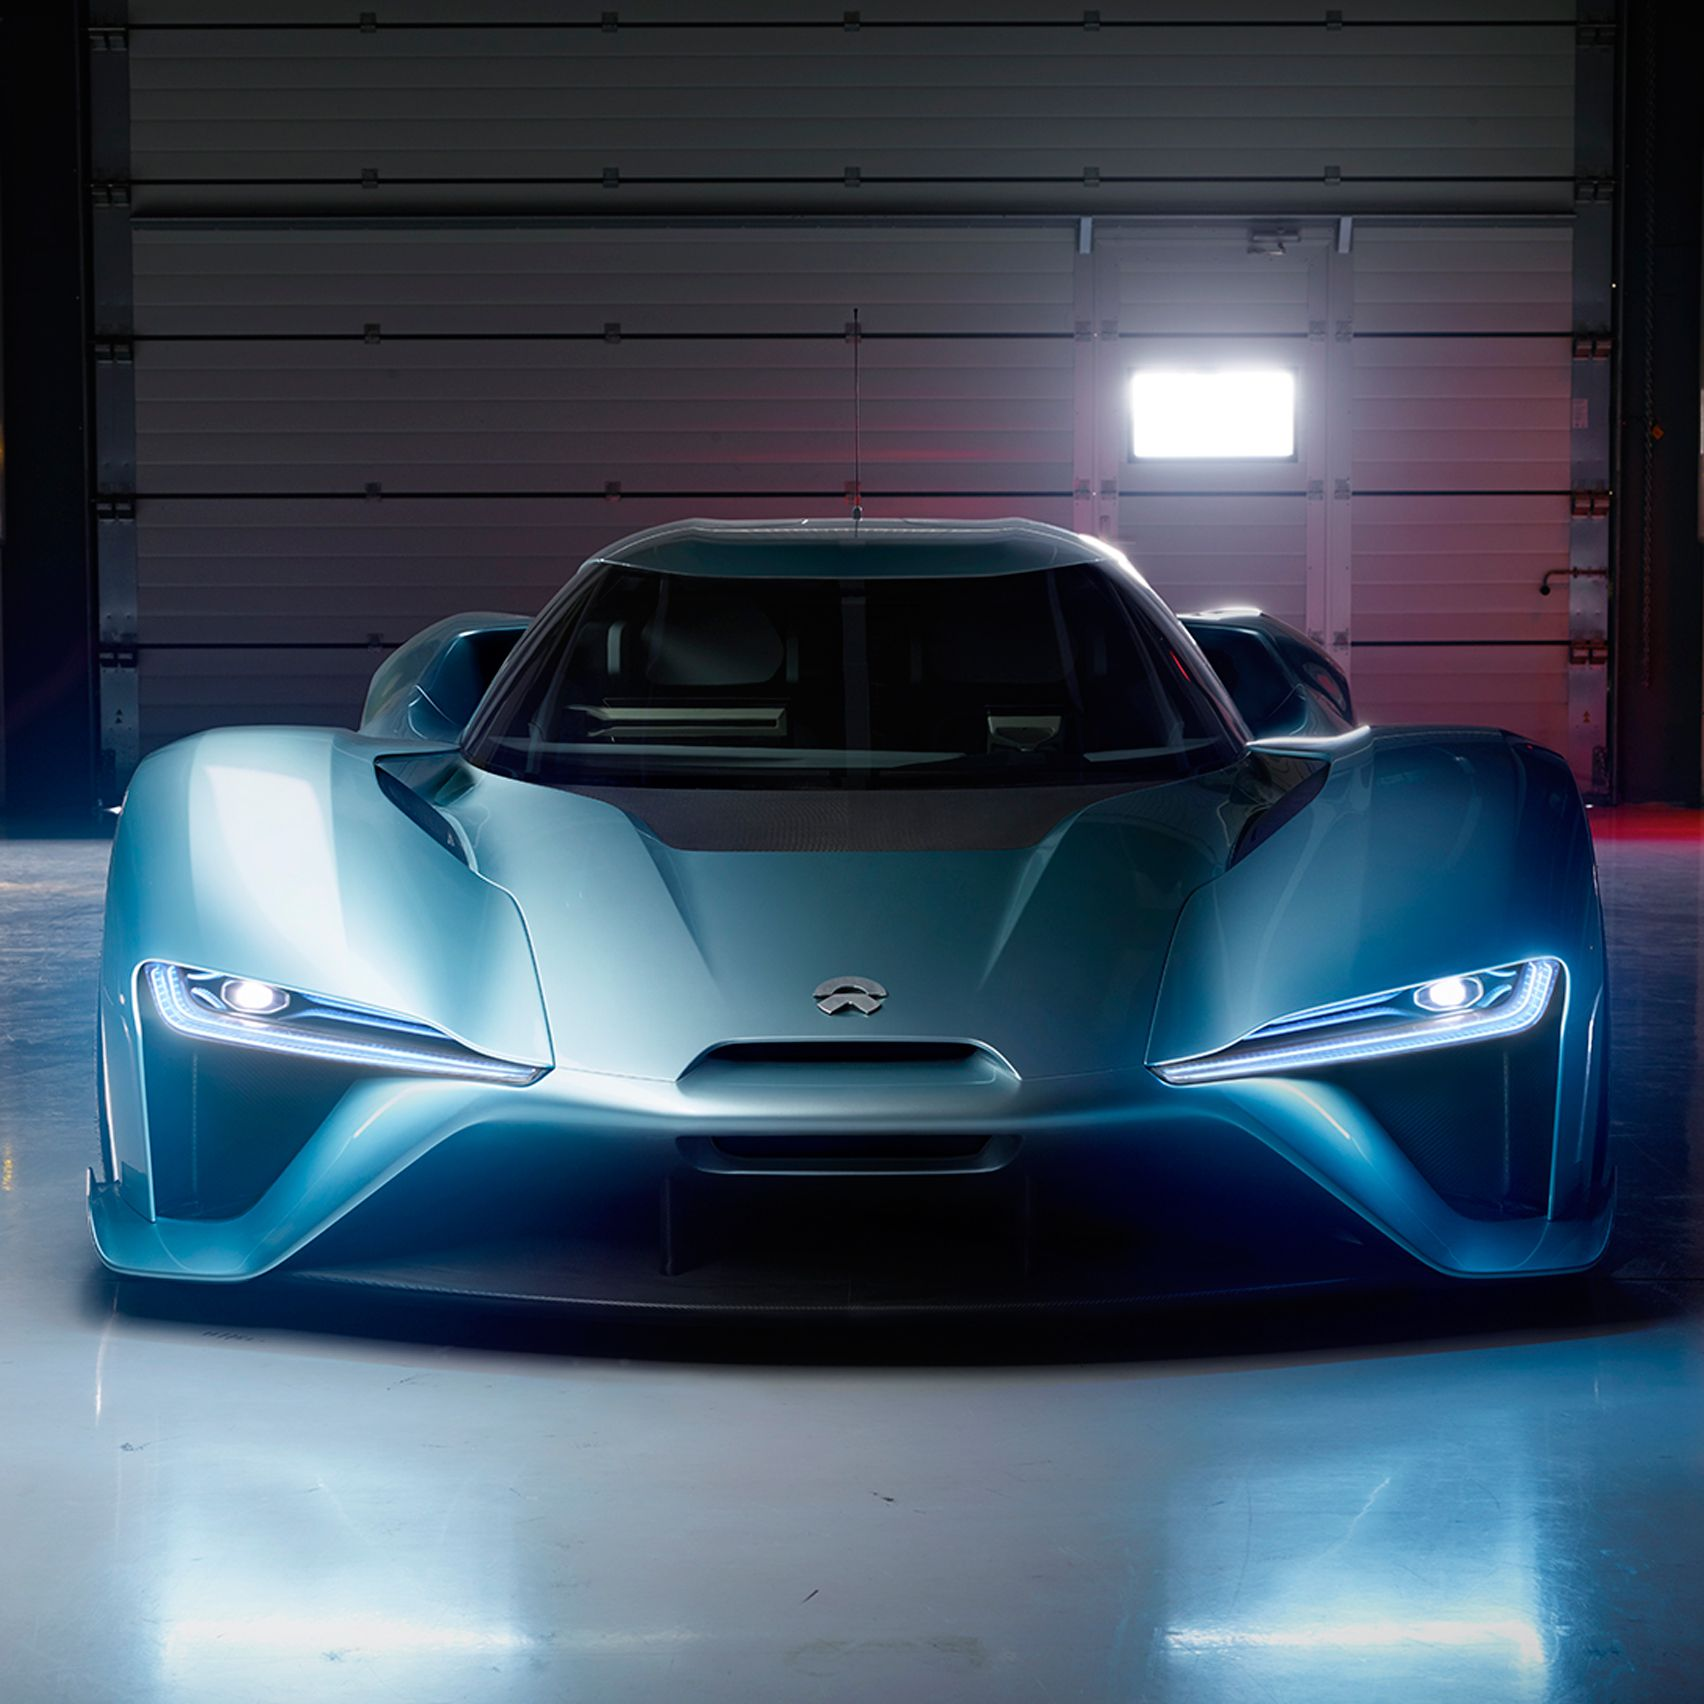 Nextev Unveils Nio Ep9 Supercar: Chinese Electric Car Startup NextEV Has Launched The